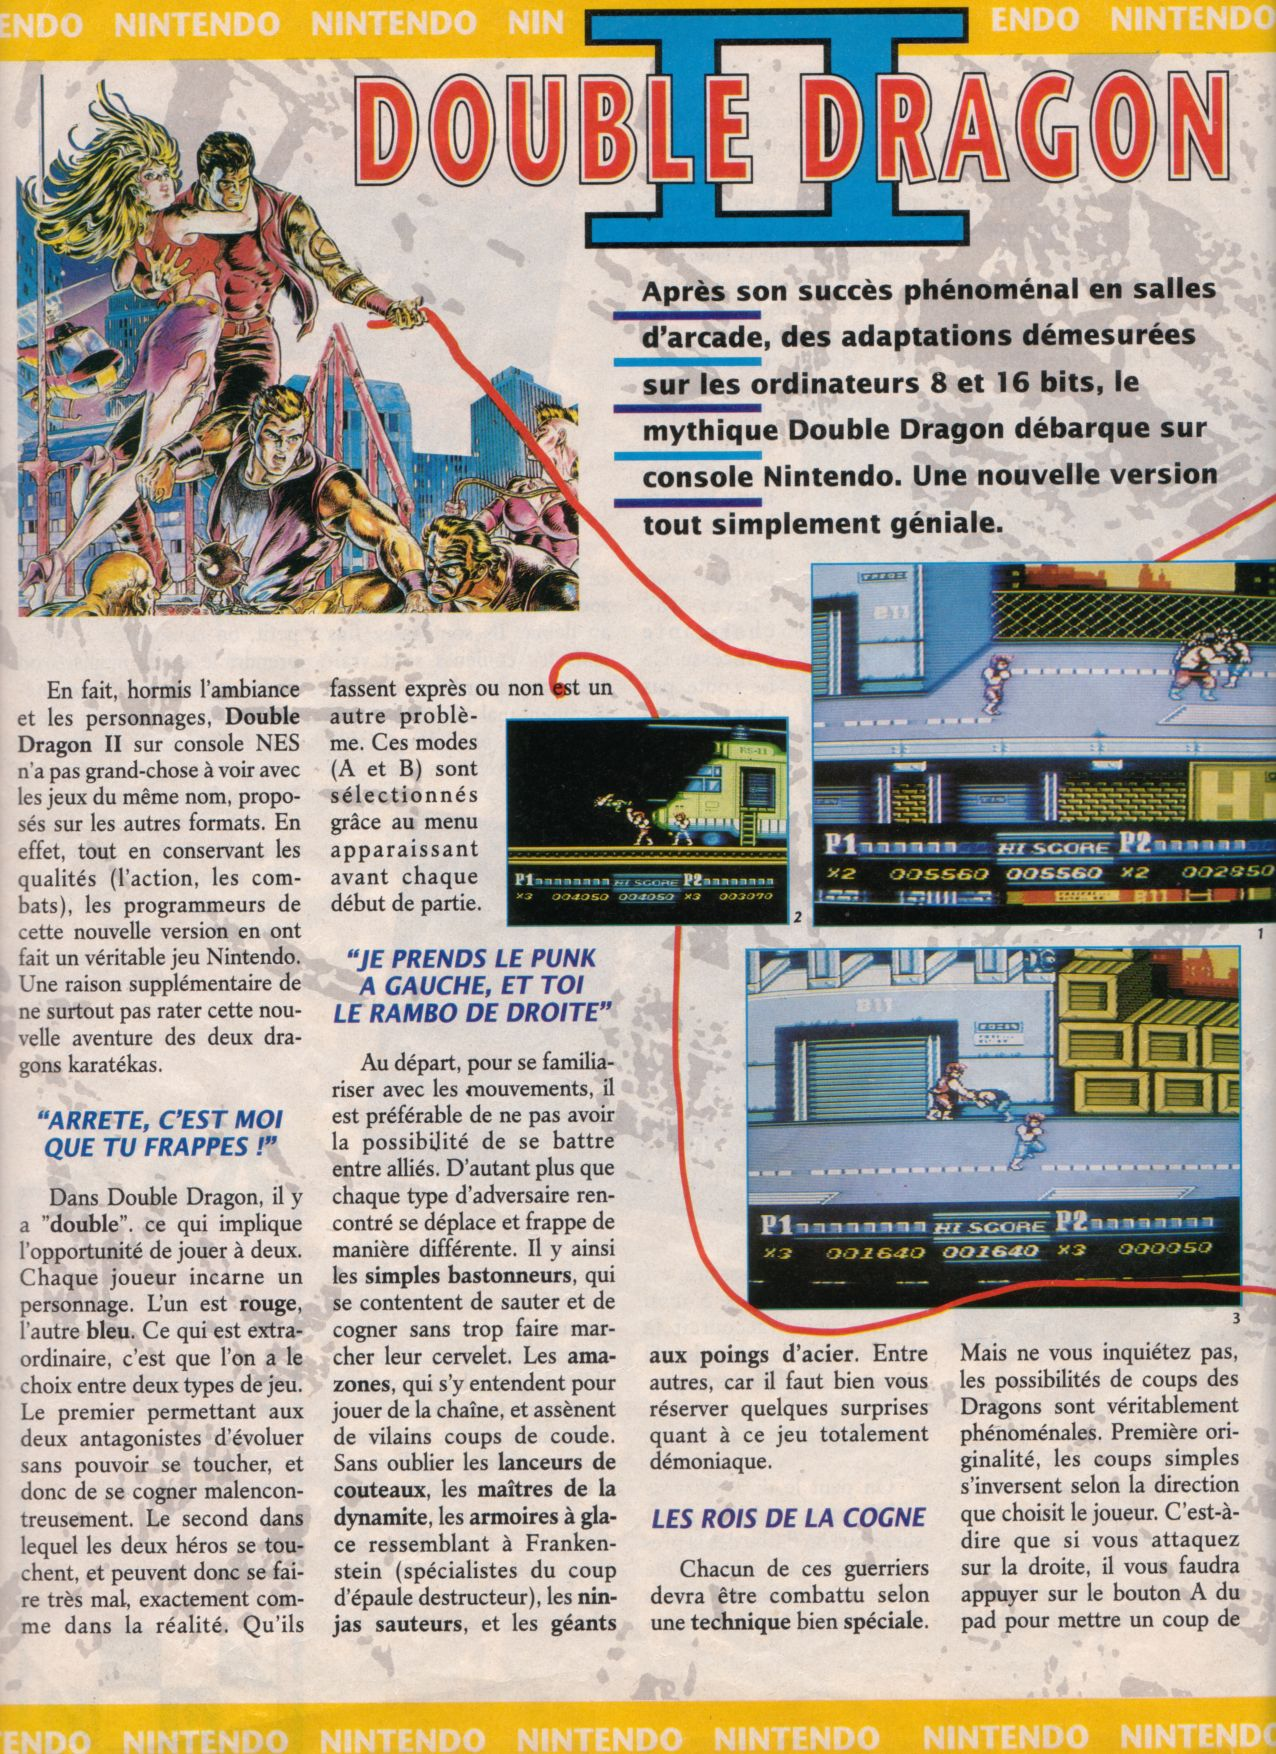 [Jeux]   DOUBLE DRAGON II (NES) 1989. Player%20One%20003%20-%20Page%20028%20(1990-11)